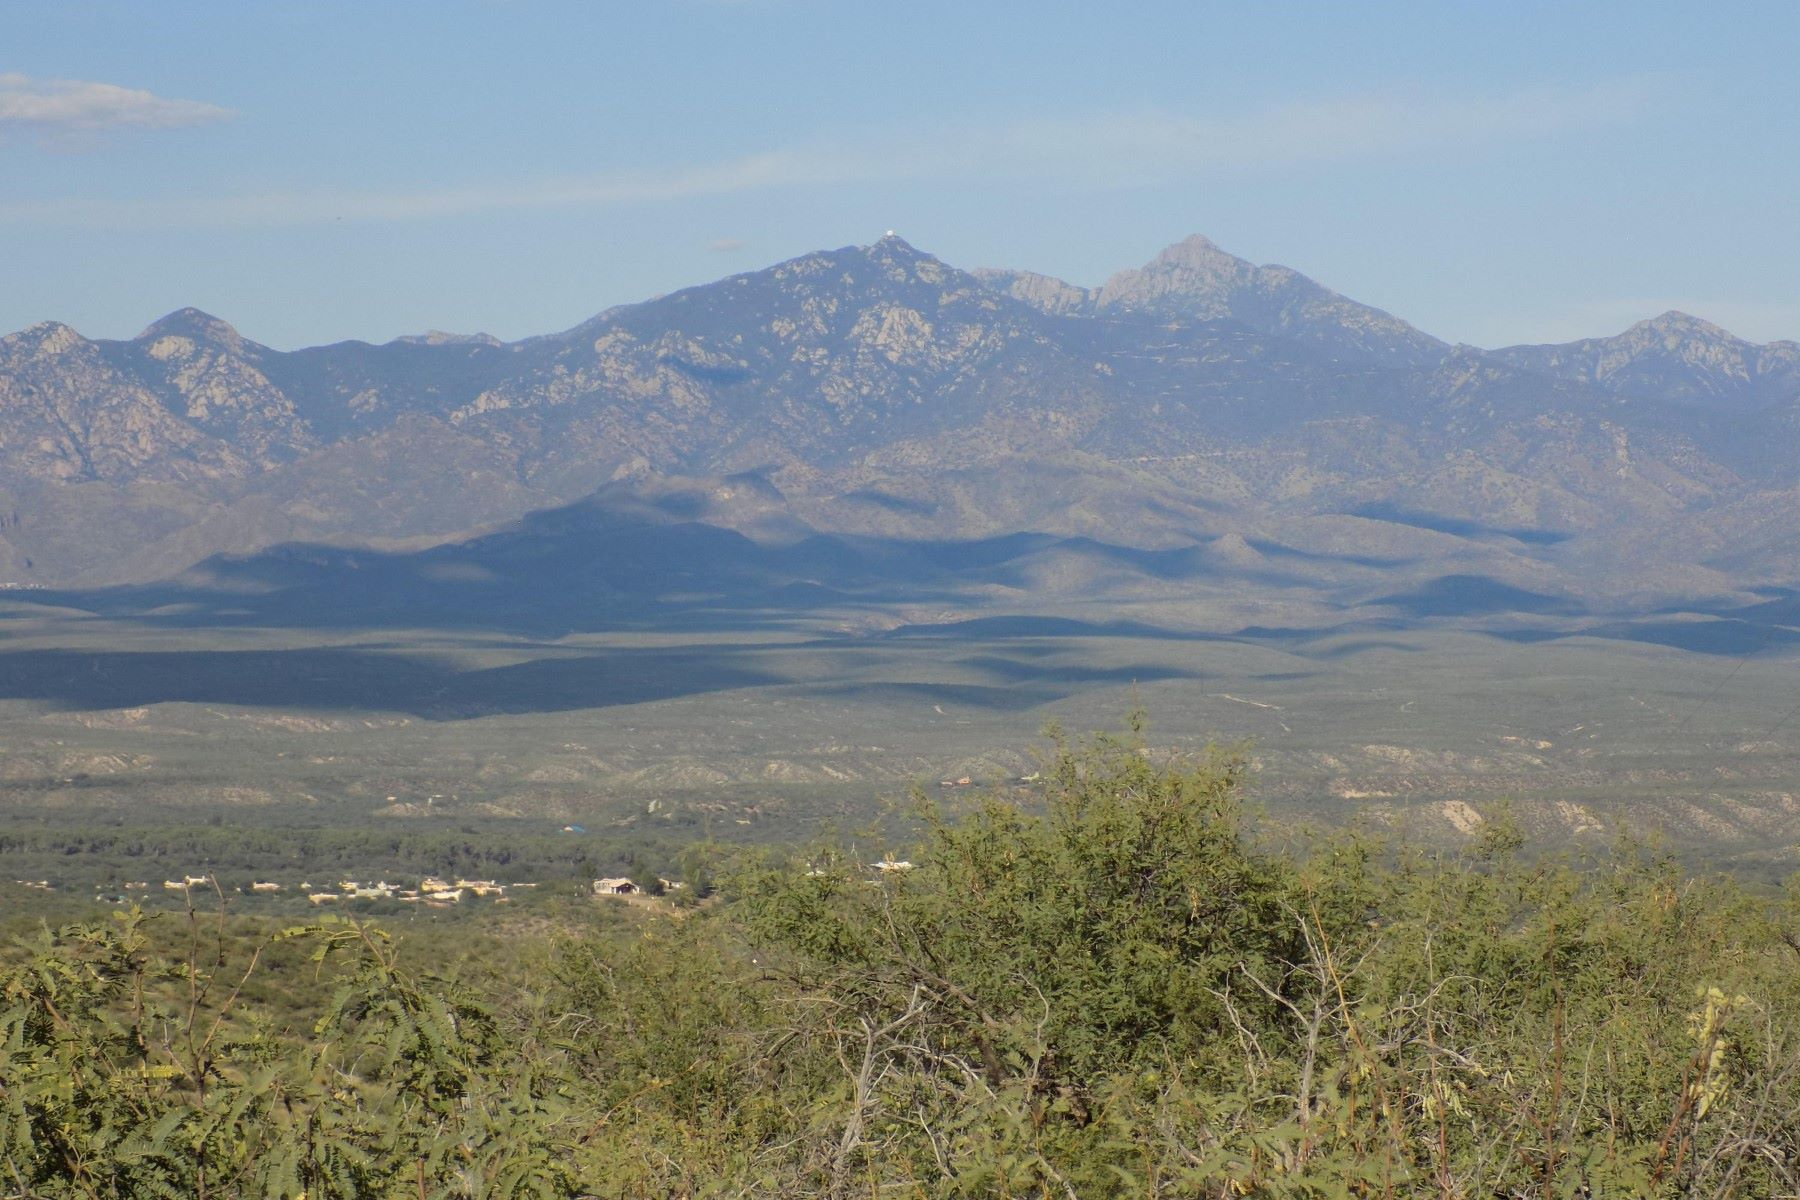 Land for Sale at Fabulous lot with Tumacacori mountain as the backdrop Tbd Aliso Springs Rd Tubac, Arizona, 85646 United States